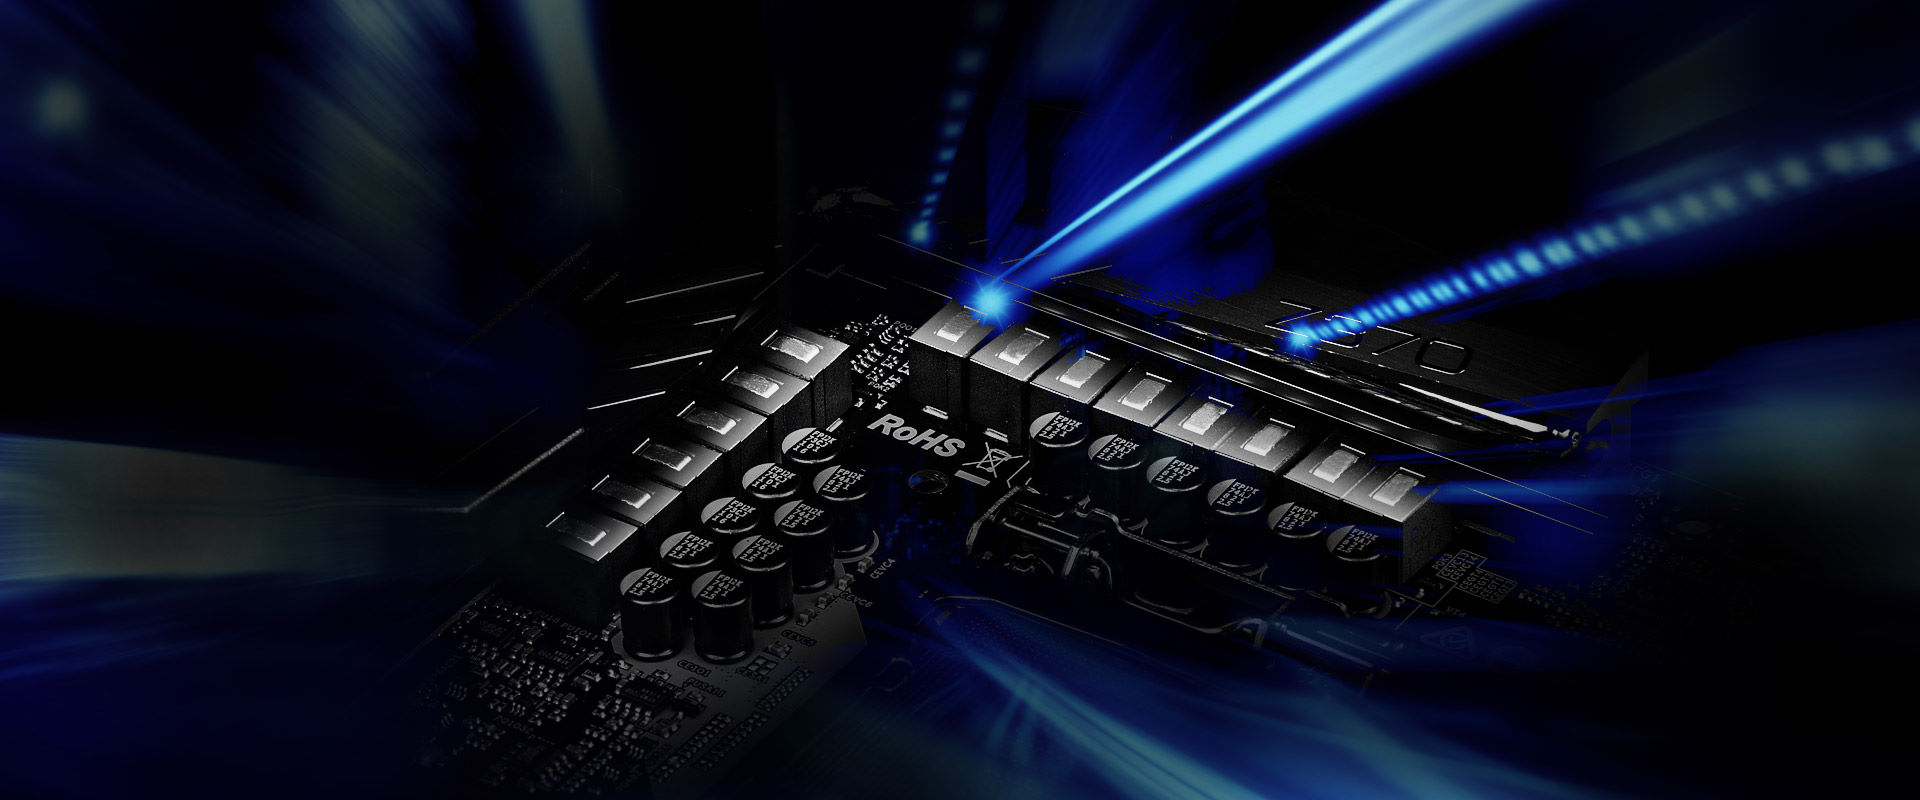 Asrock Fatal1ty Z370 Professional Gaming I7 Nte5 Master Socket Wiring Diagram Built For 8th Generation Intel Core Processors